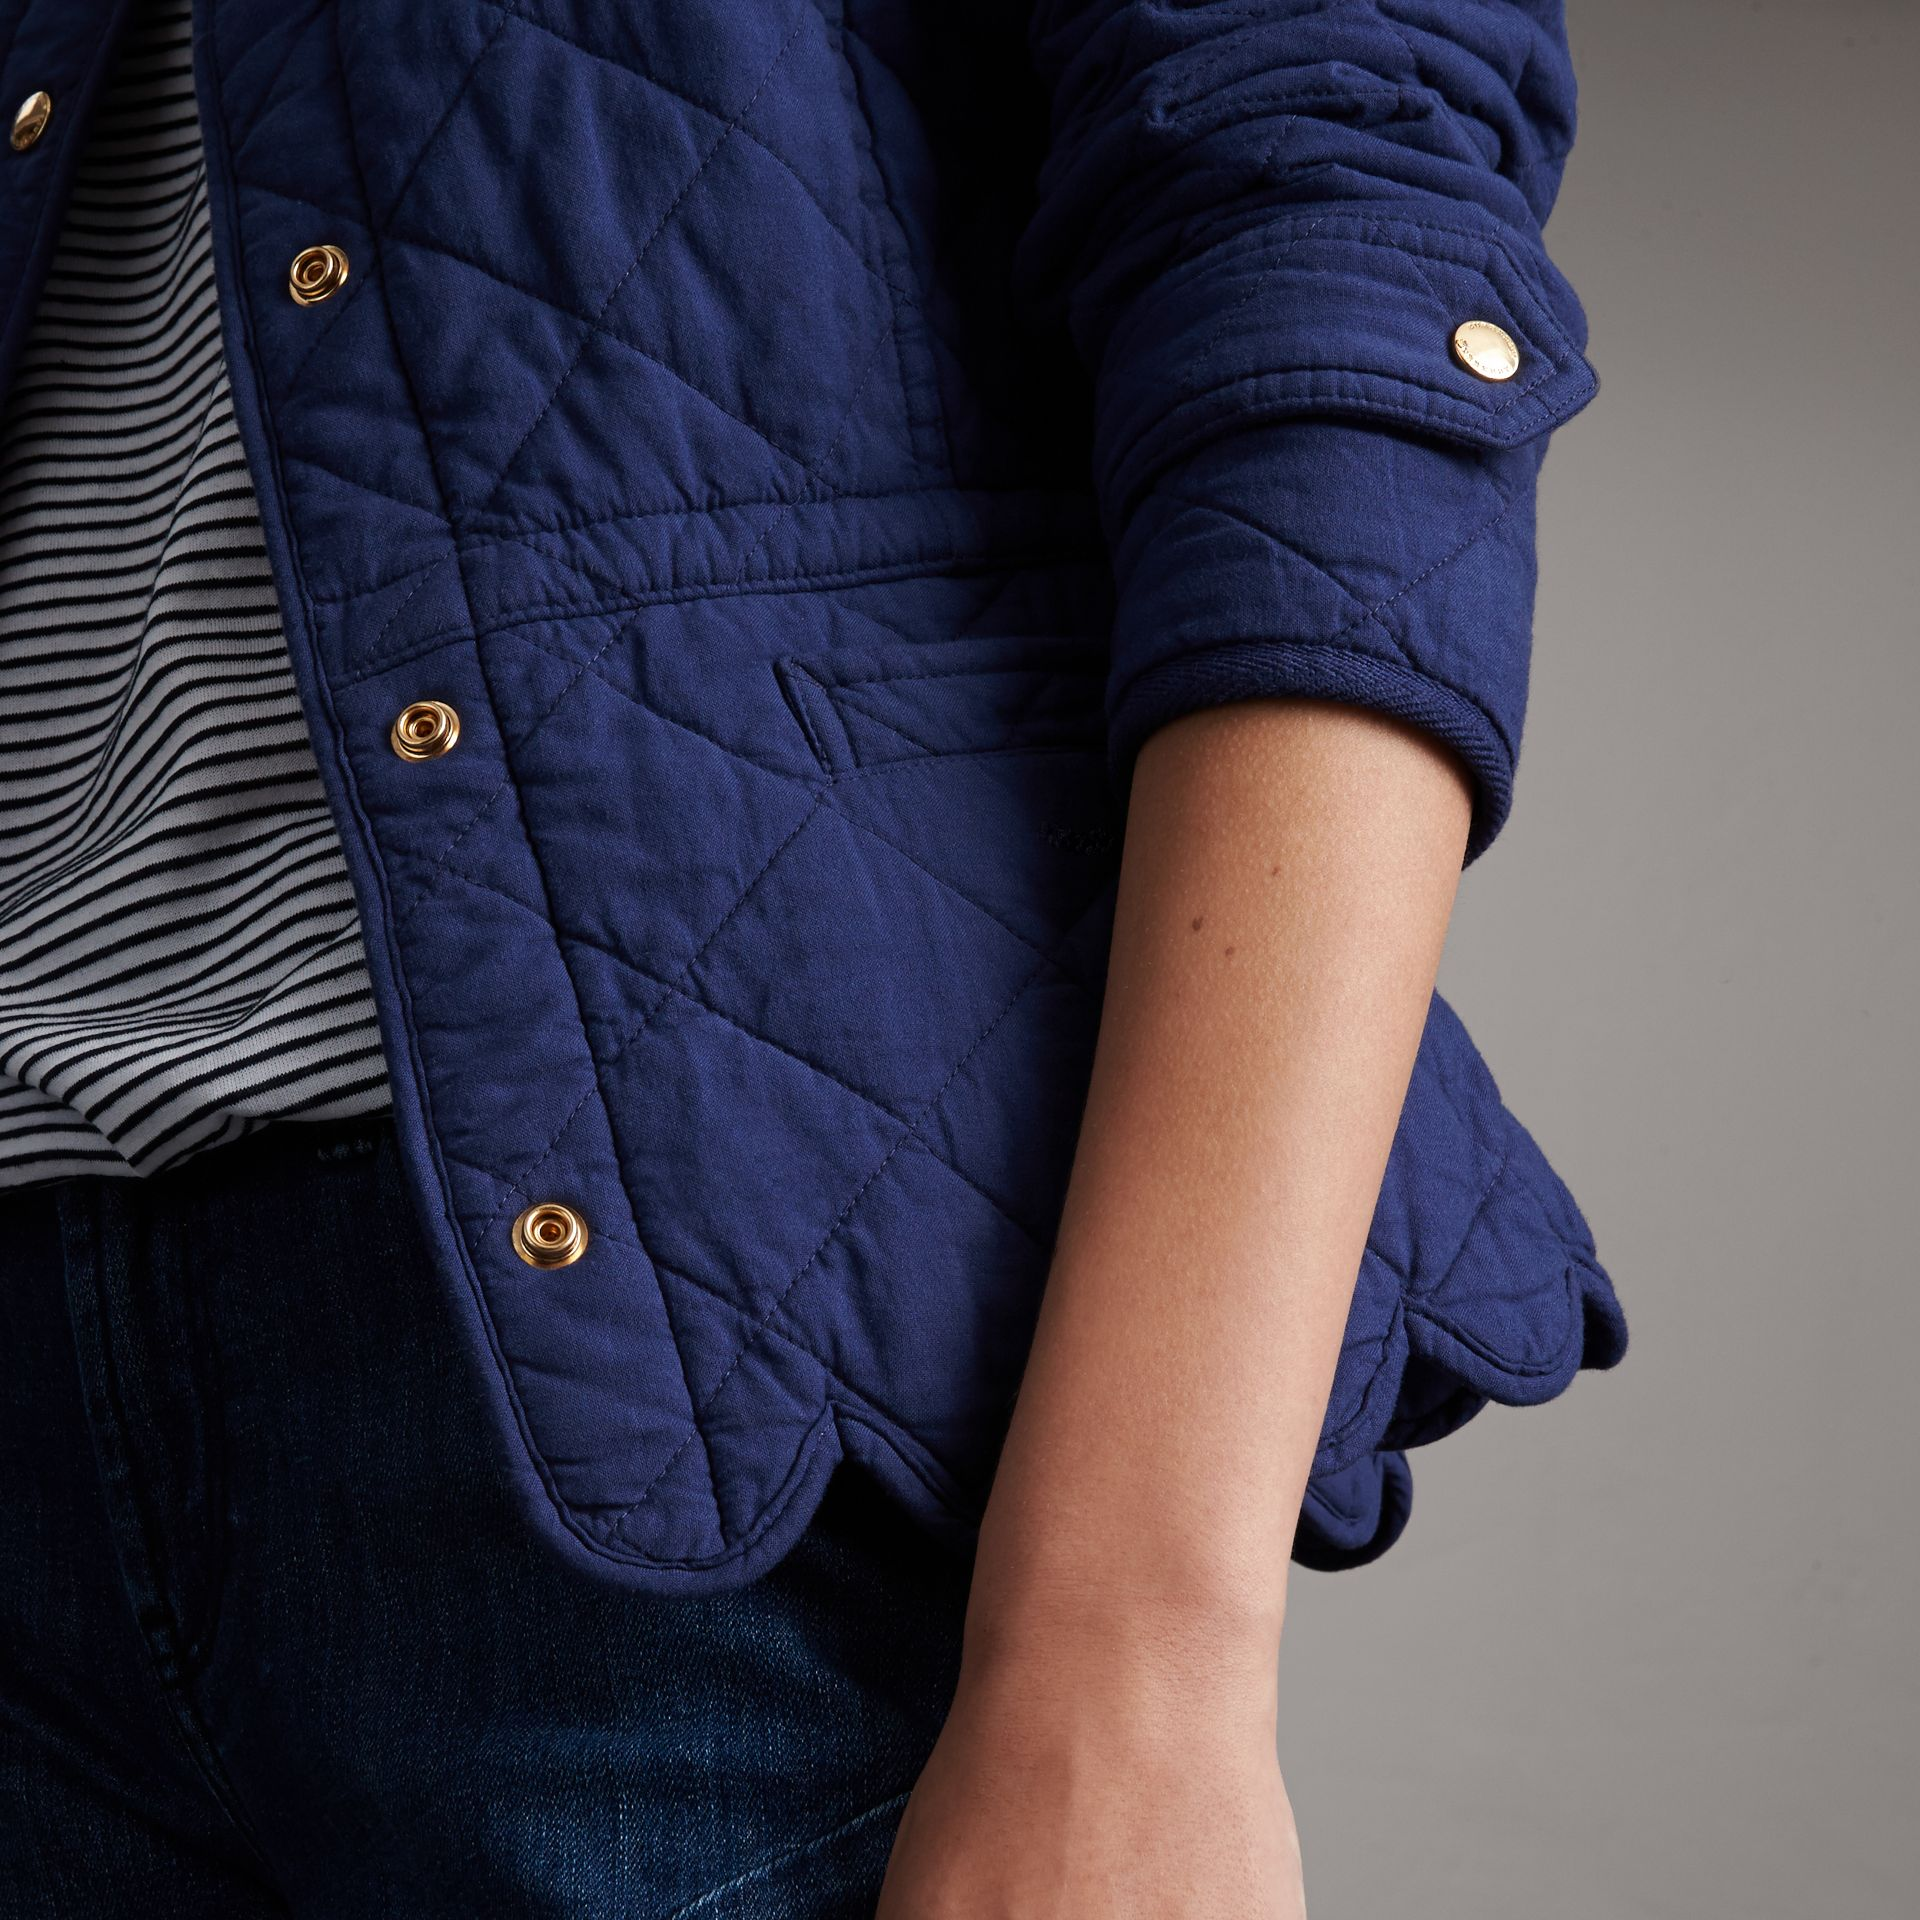 Scalloped Diamond Quilted Cotton Jacket in Indigo - Women | Burberry - gallery image 5